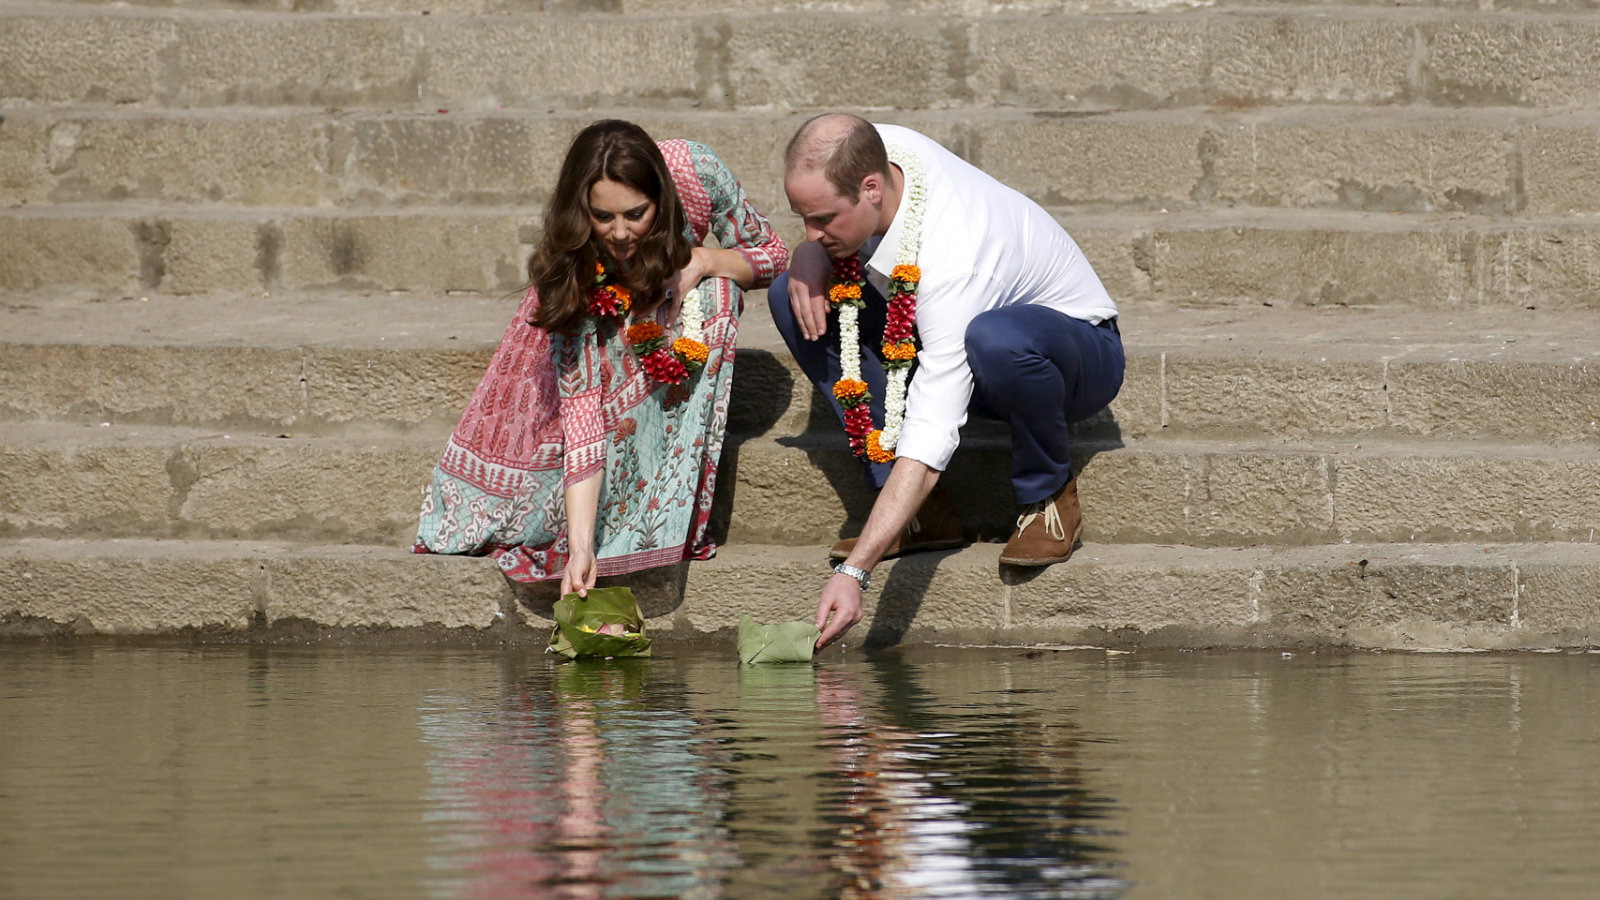 Britain's Prince William and his wife Catherine, Duchess of Cambridge, float flowers at the Banganga Water Tank in Mumbai, India, Sunday, April 10, 2016.